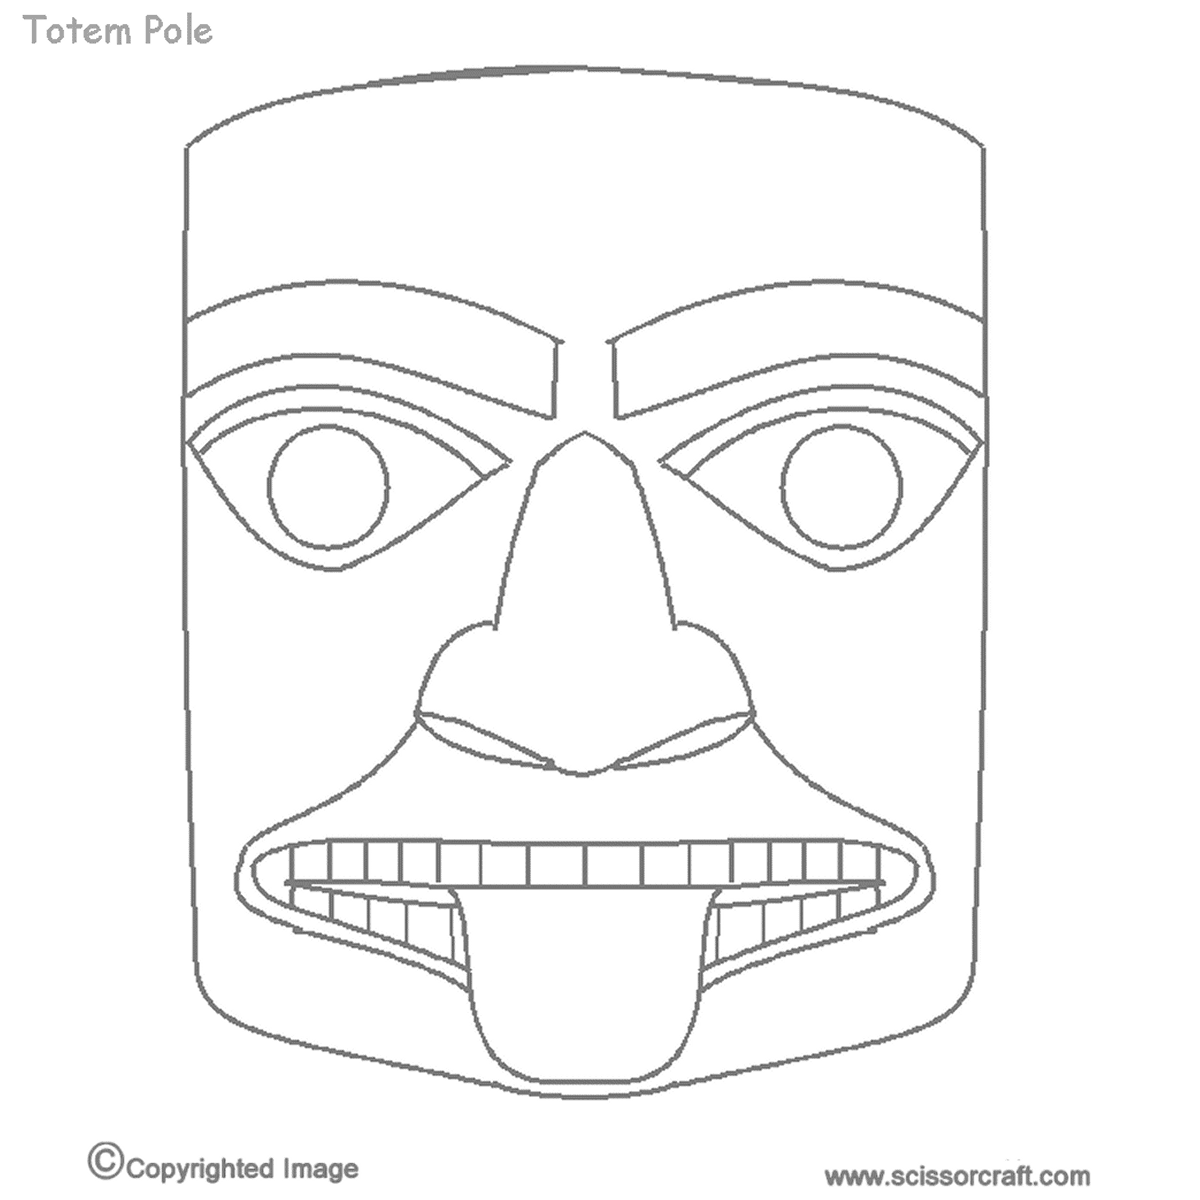 Printable Totem Pole Animals